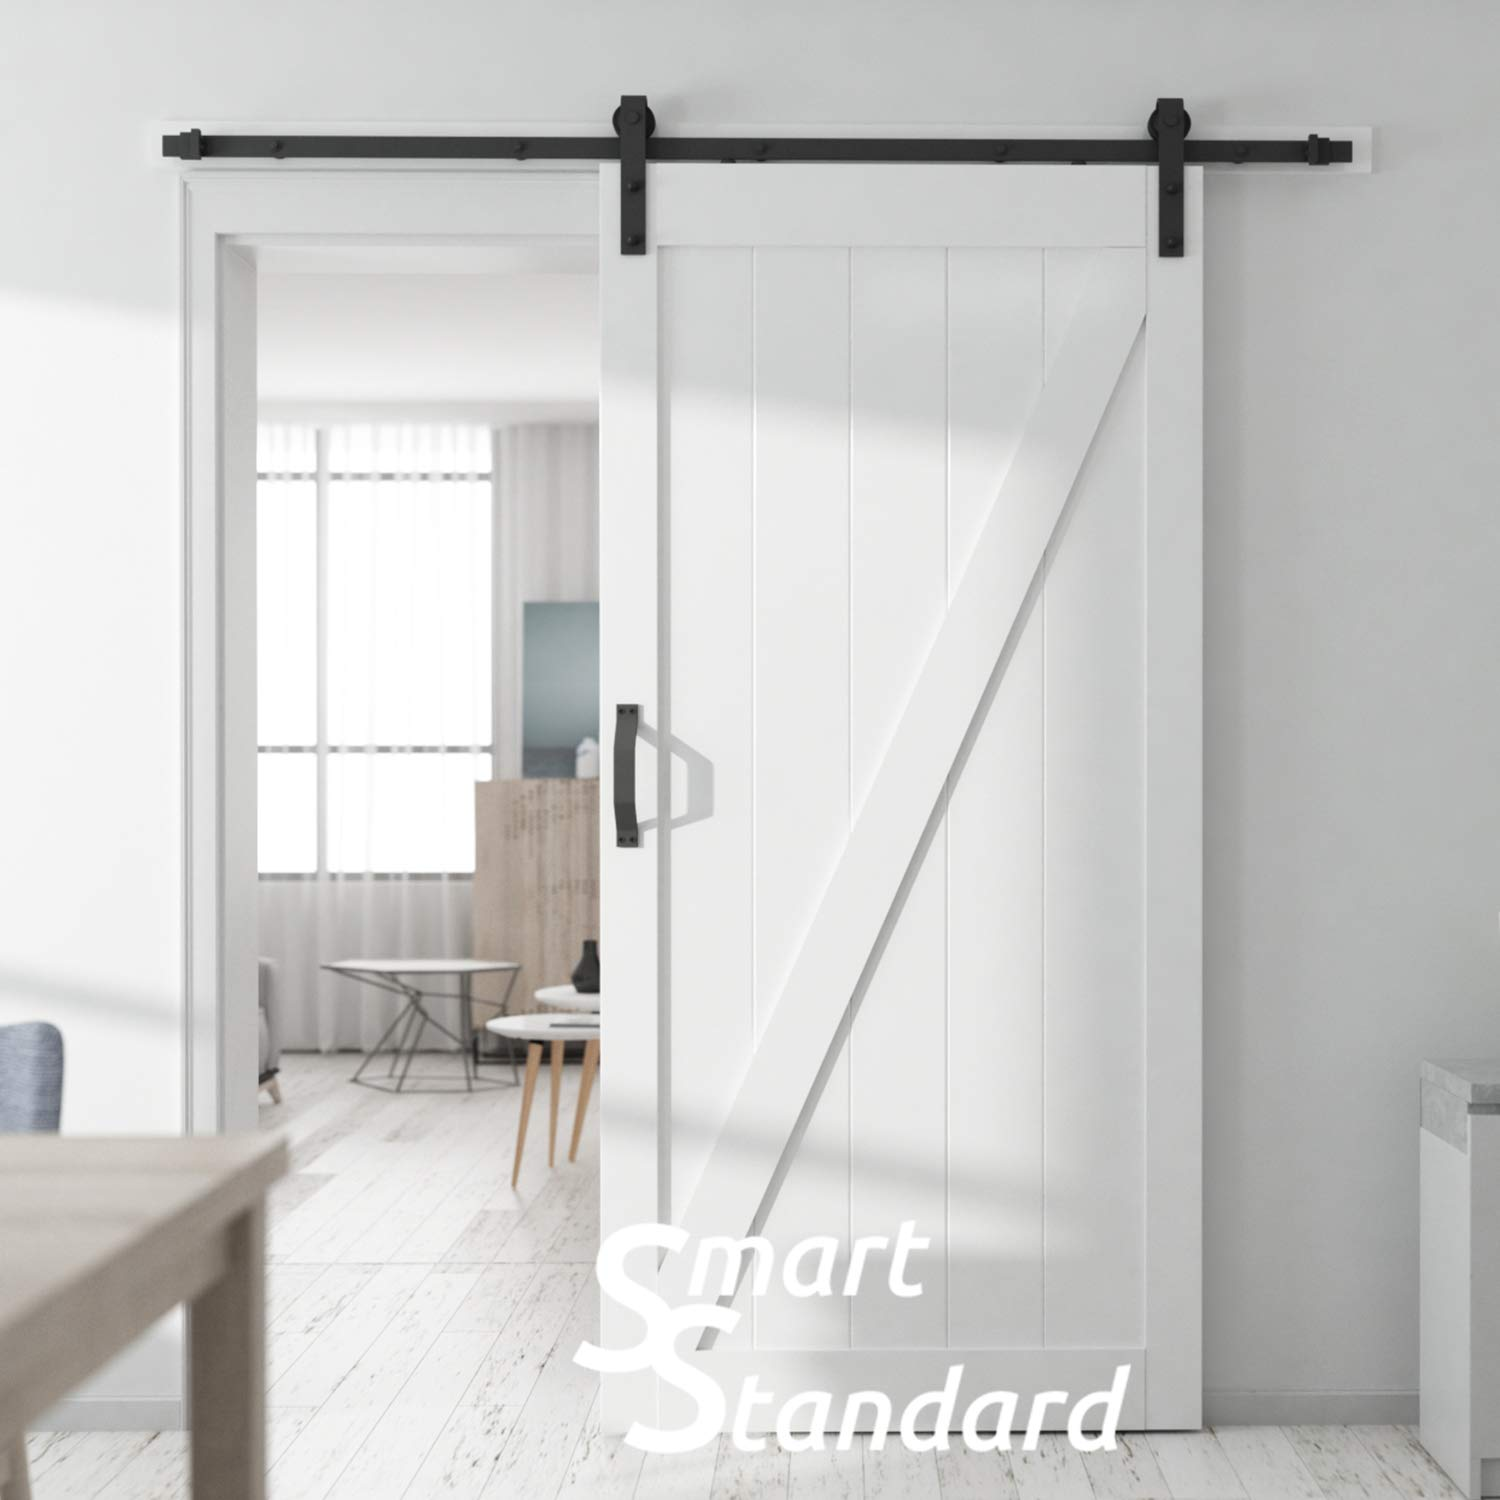 SMARTSTANDARD 36in x 84in Sliding Barn Door with 6.6ft BarnDoor Hardware Kit & Handle, Pre-Drilled Ready to Assemble Wood Slab Covered with Water-Proof PVC Surface (White Z-Frame Panel), by SMARTSTANDARD (Image #8)